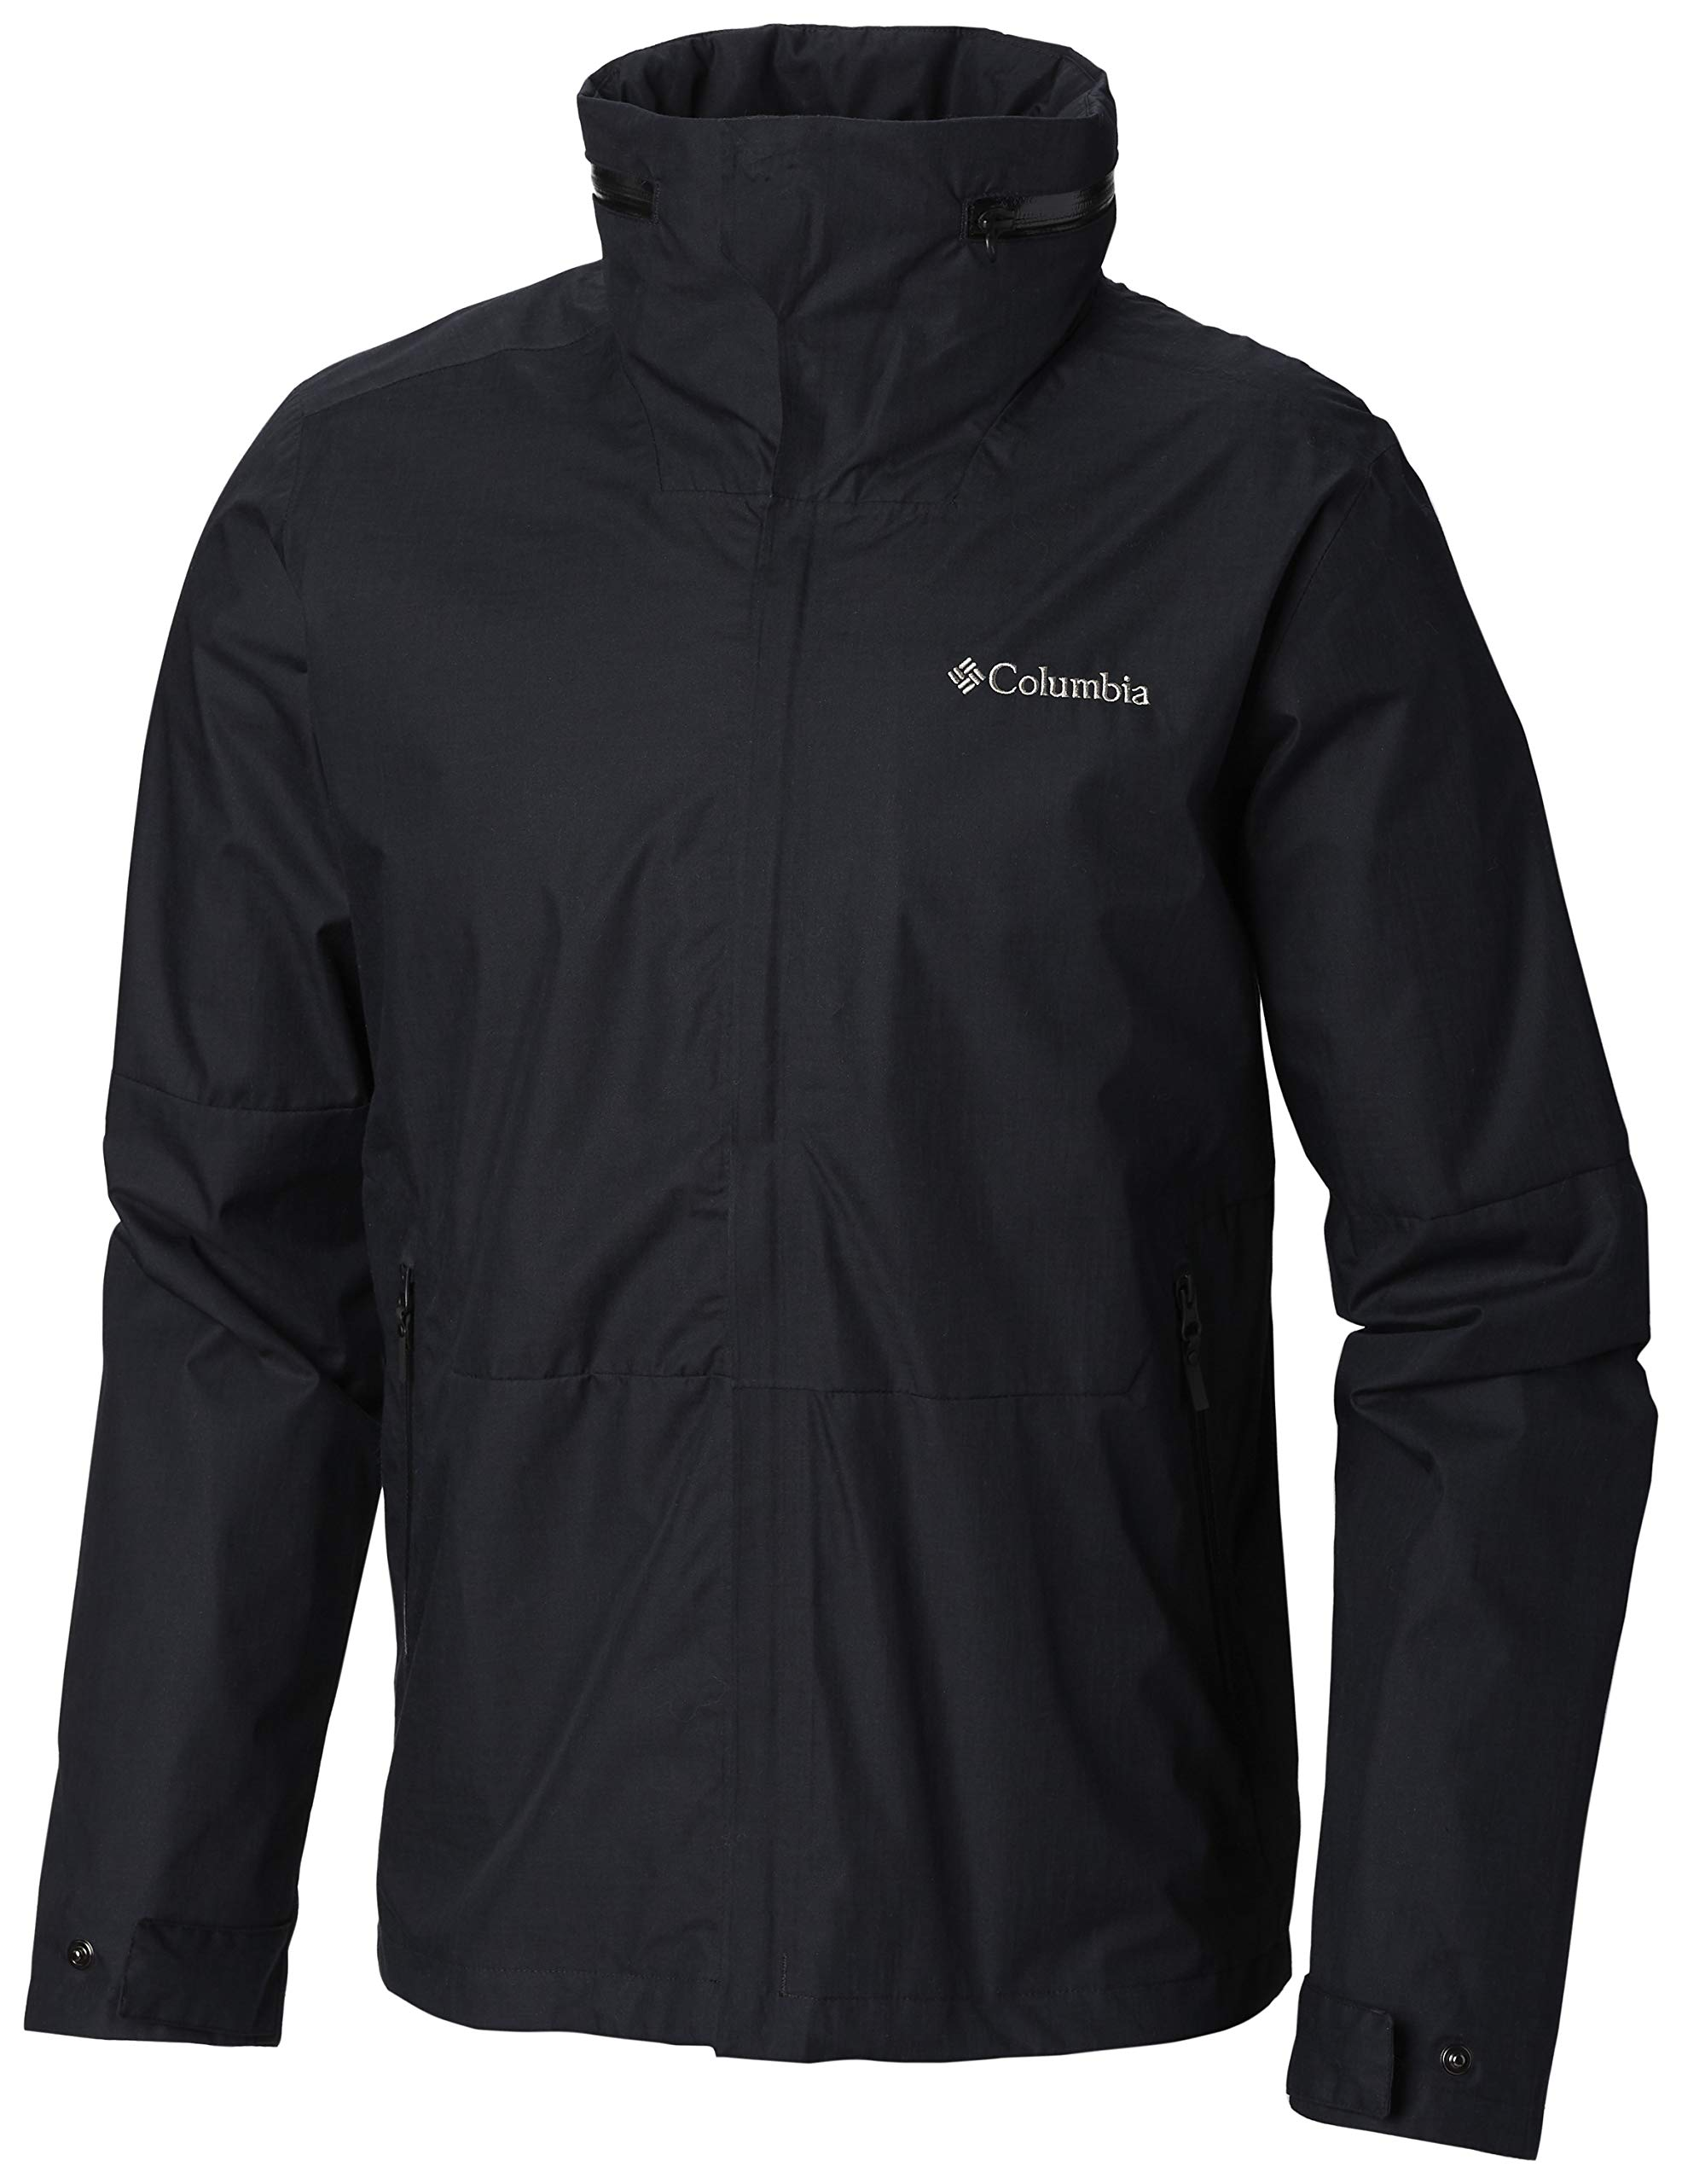 Columbia Men's Westbrook Jacket,Black,Medium by Columbia